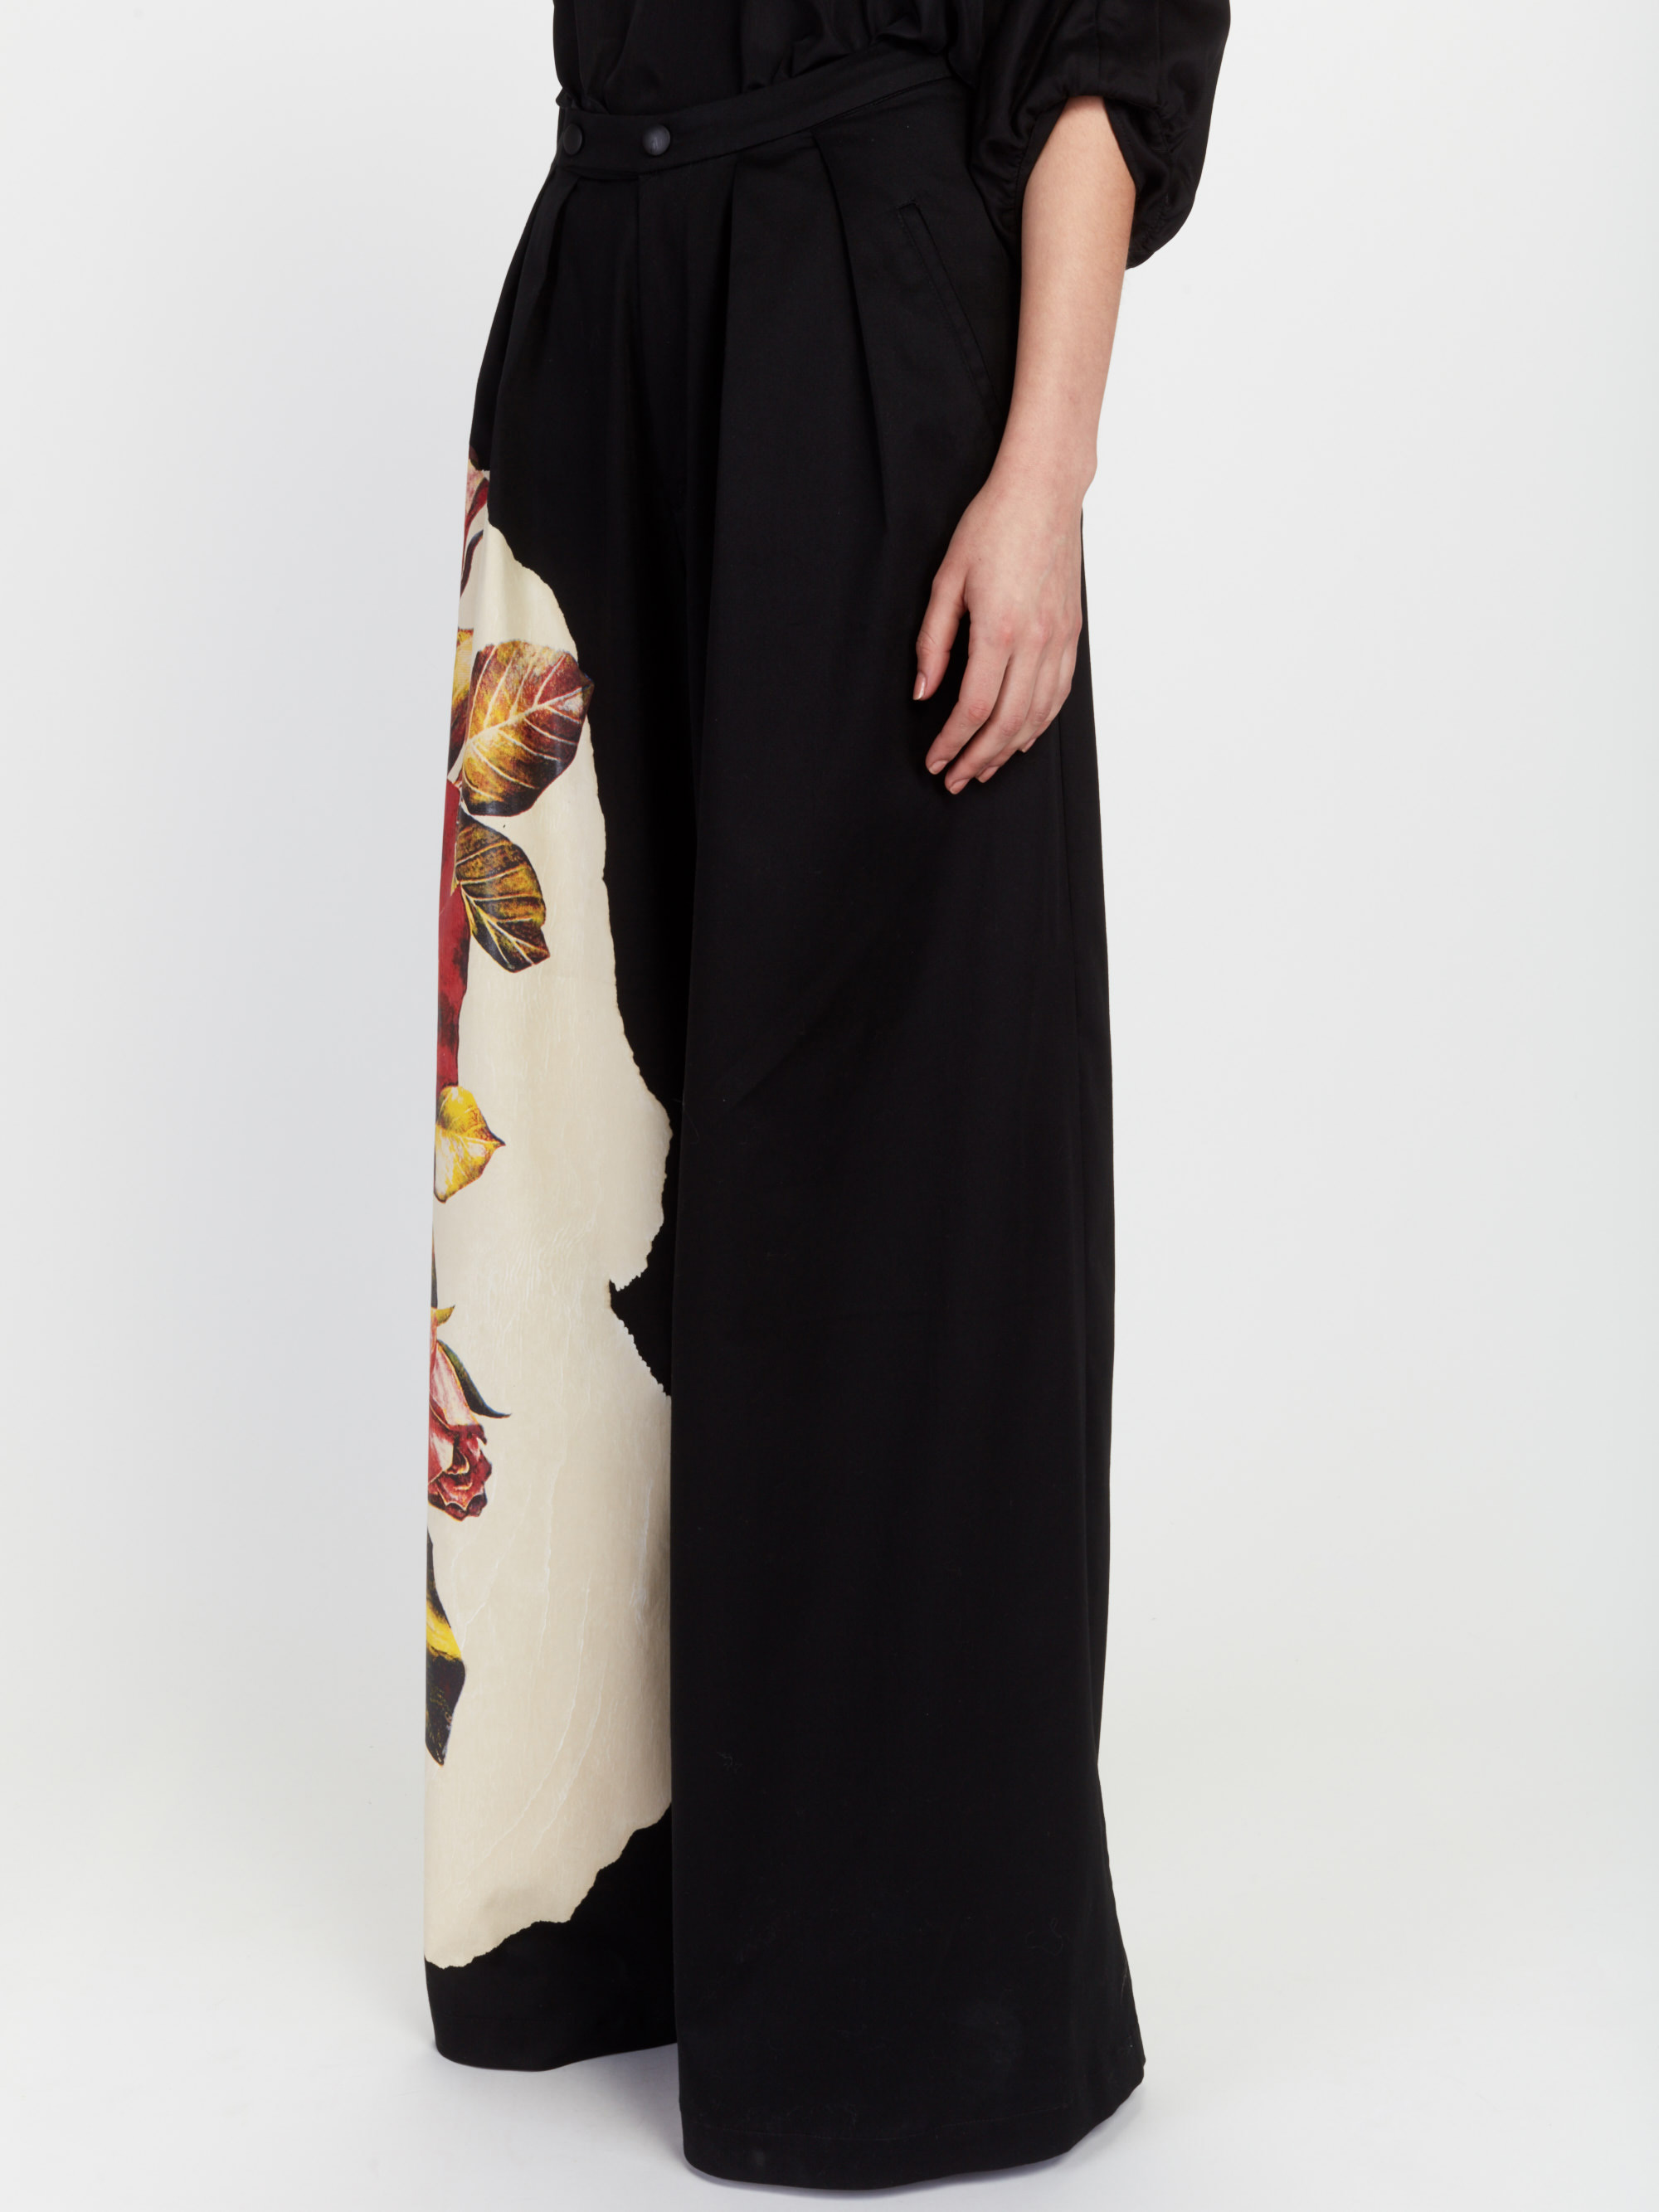 jt_invisible-printed-pant_30-26-2018__picture-1753